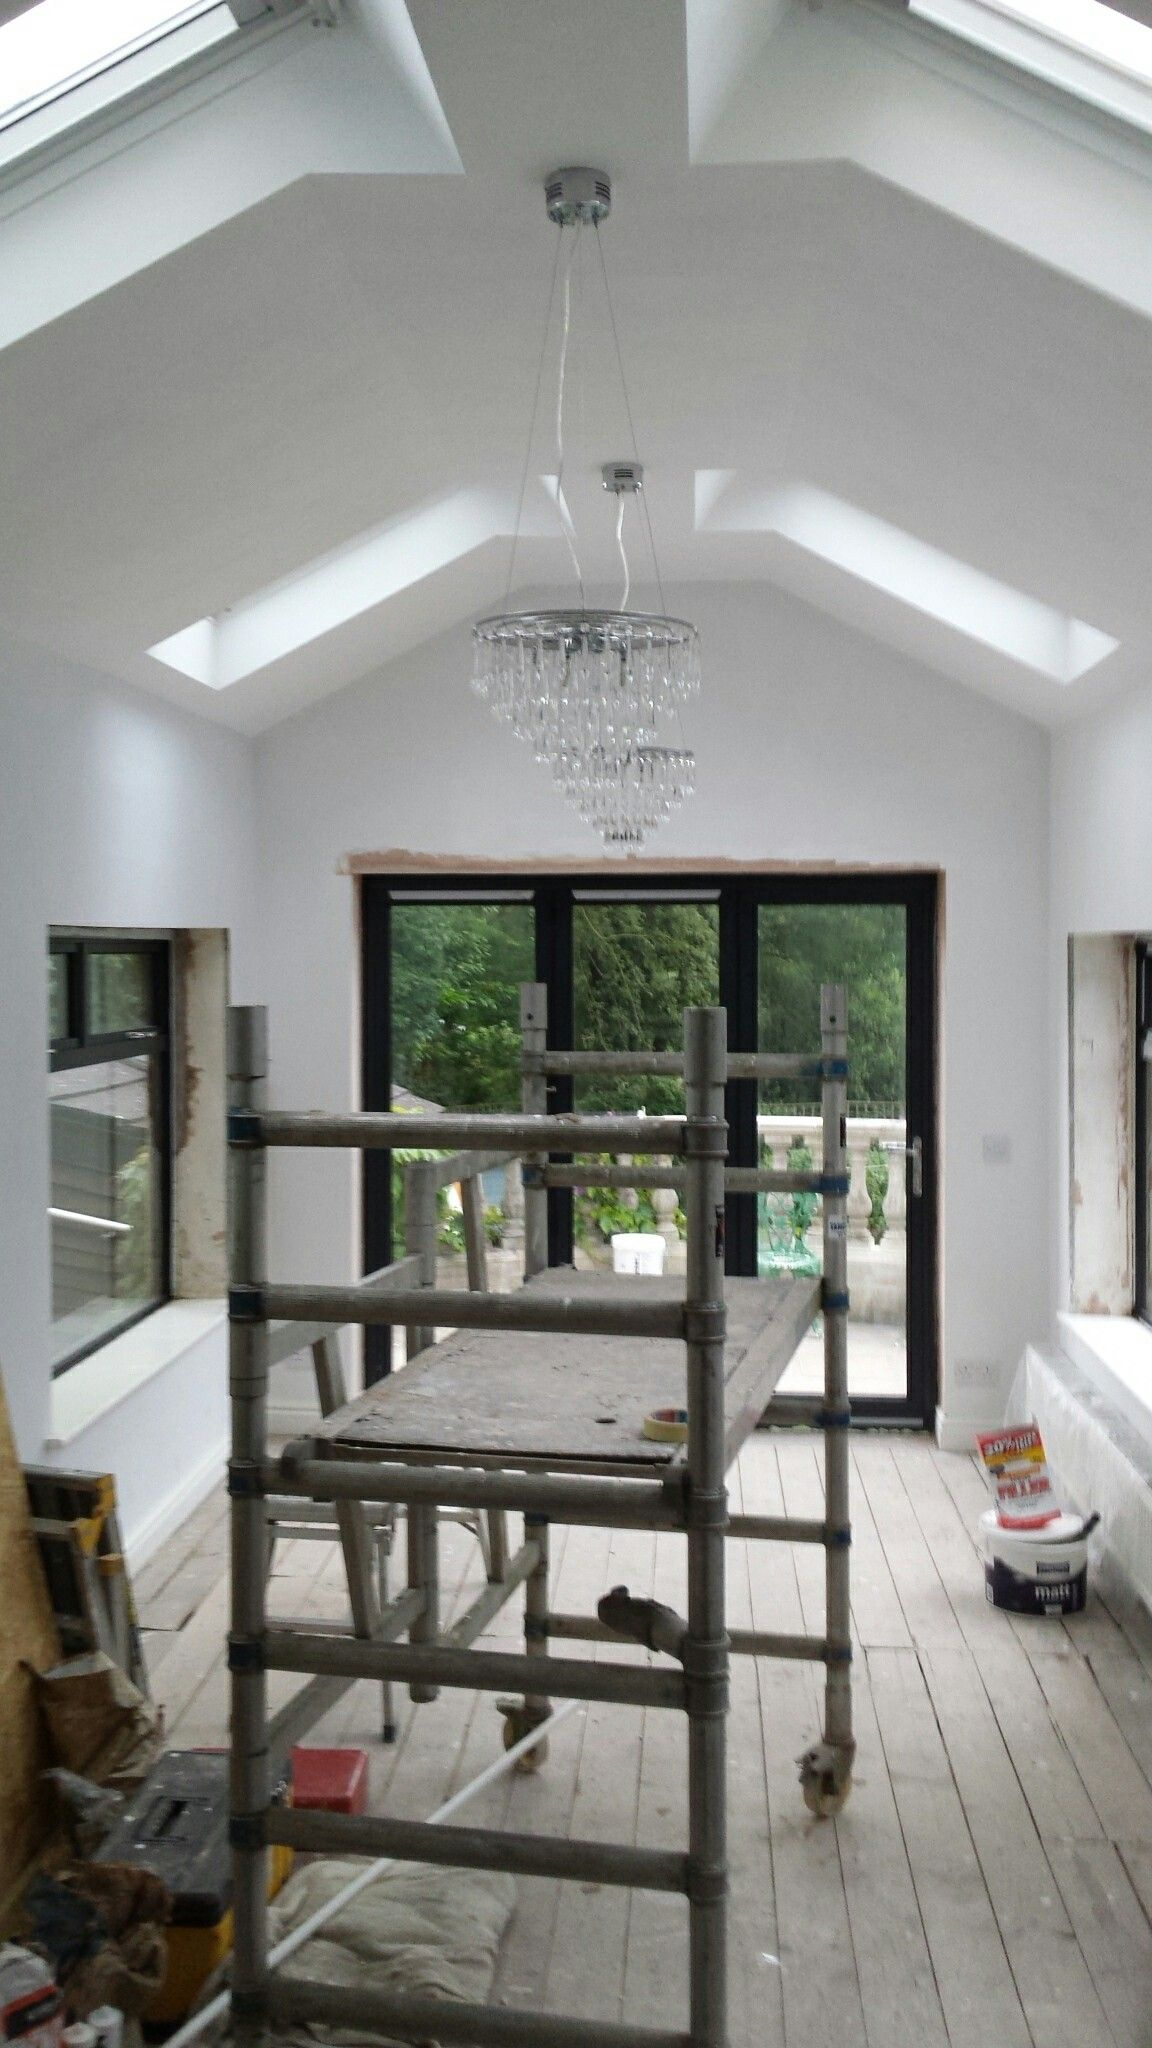 From Closed In Flat Roof To A Lovely Open Vaulted Ceiling Vaulted Ceiling Kitchen Modern Roofing Flat Roof Extension